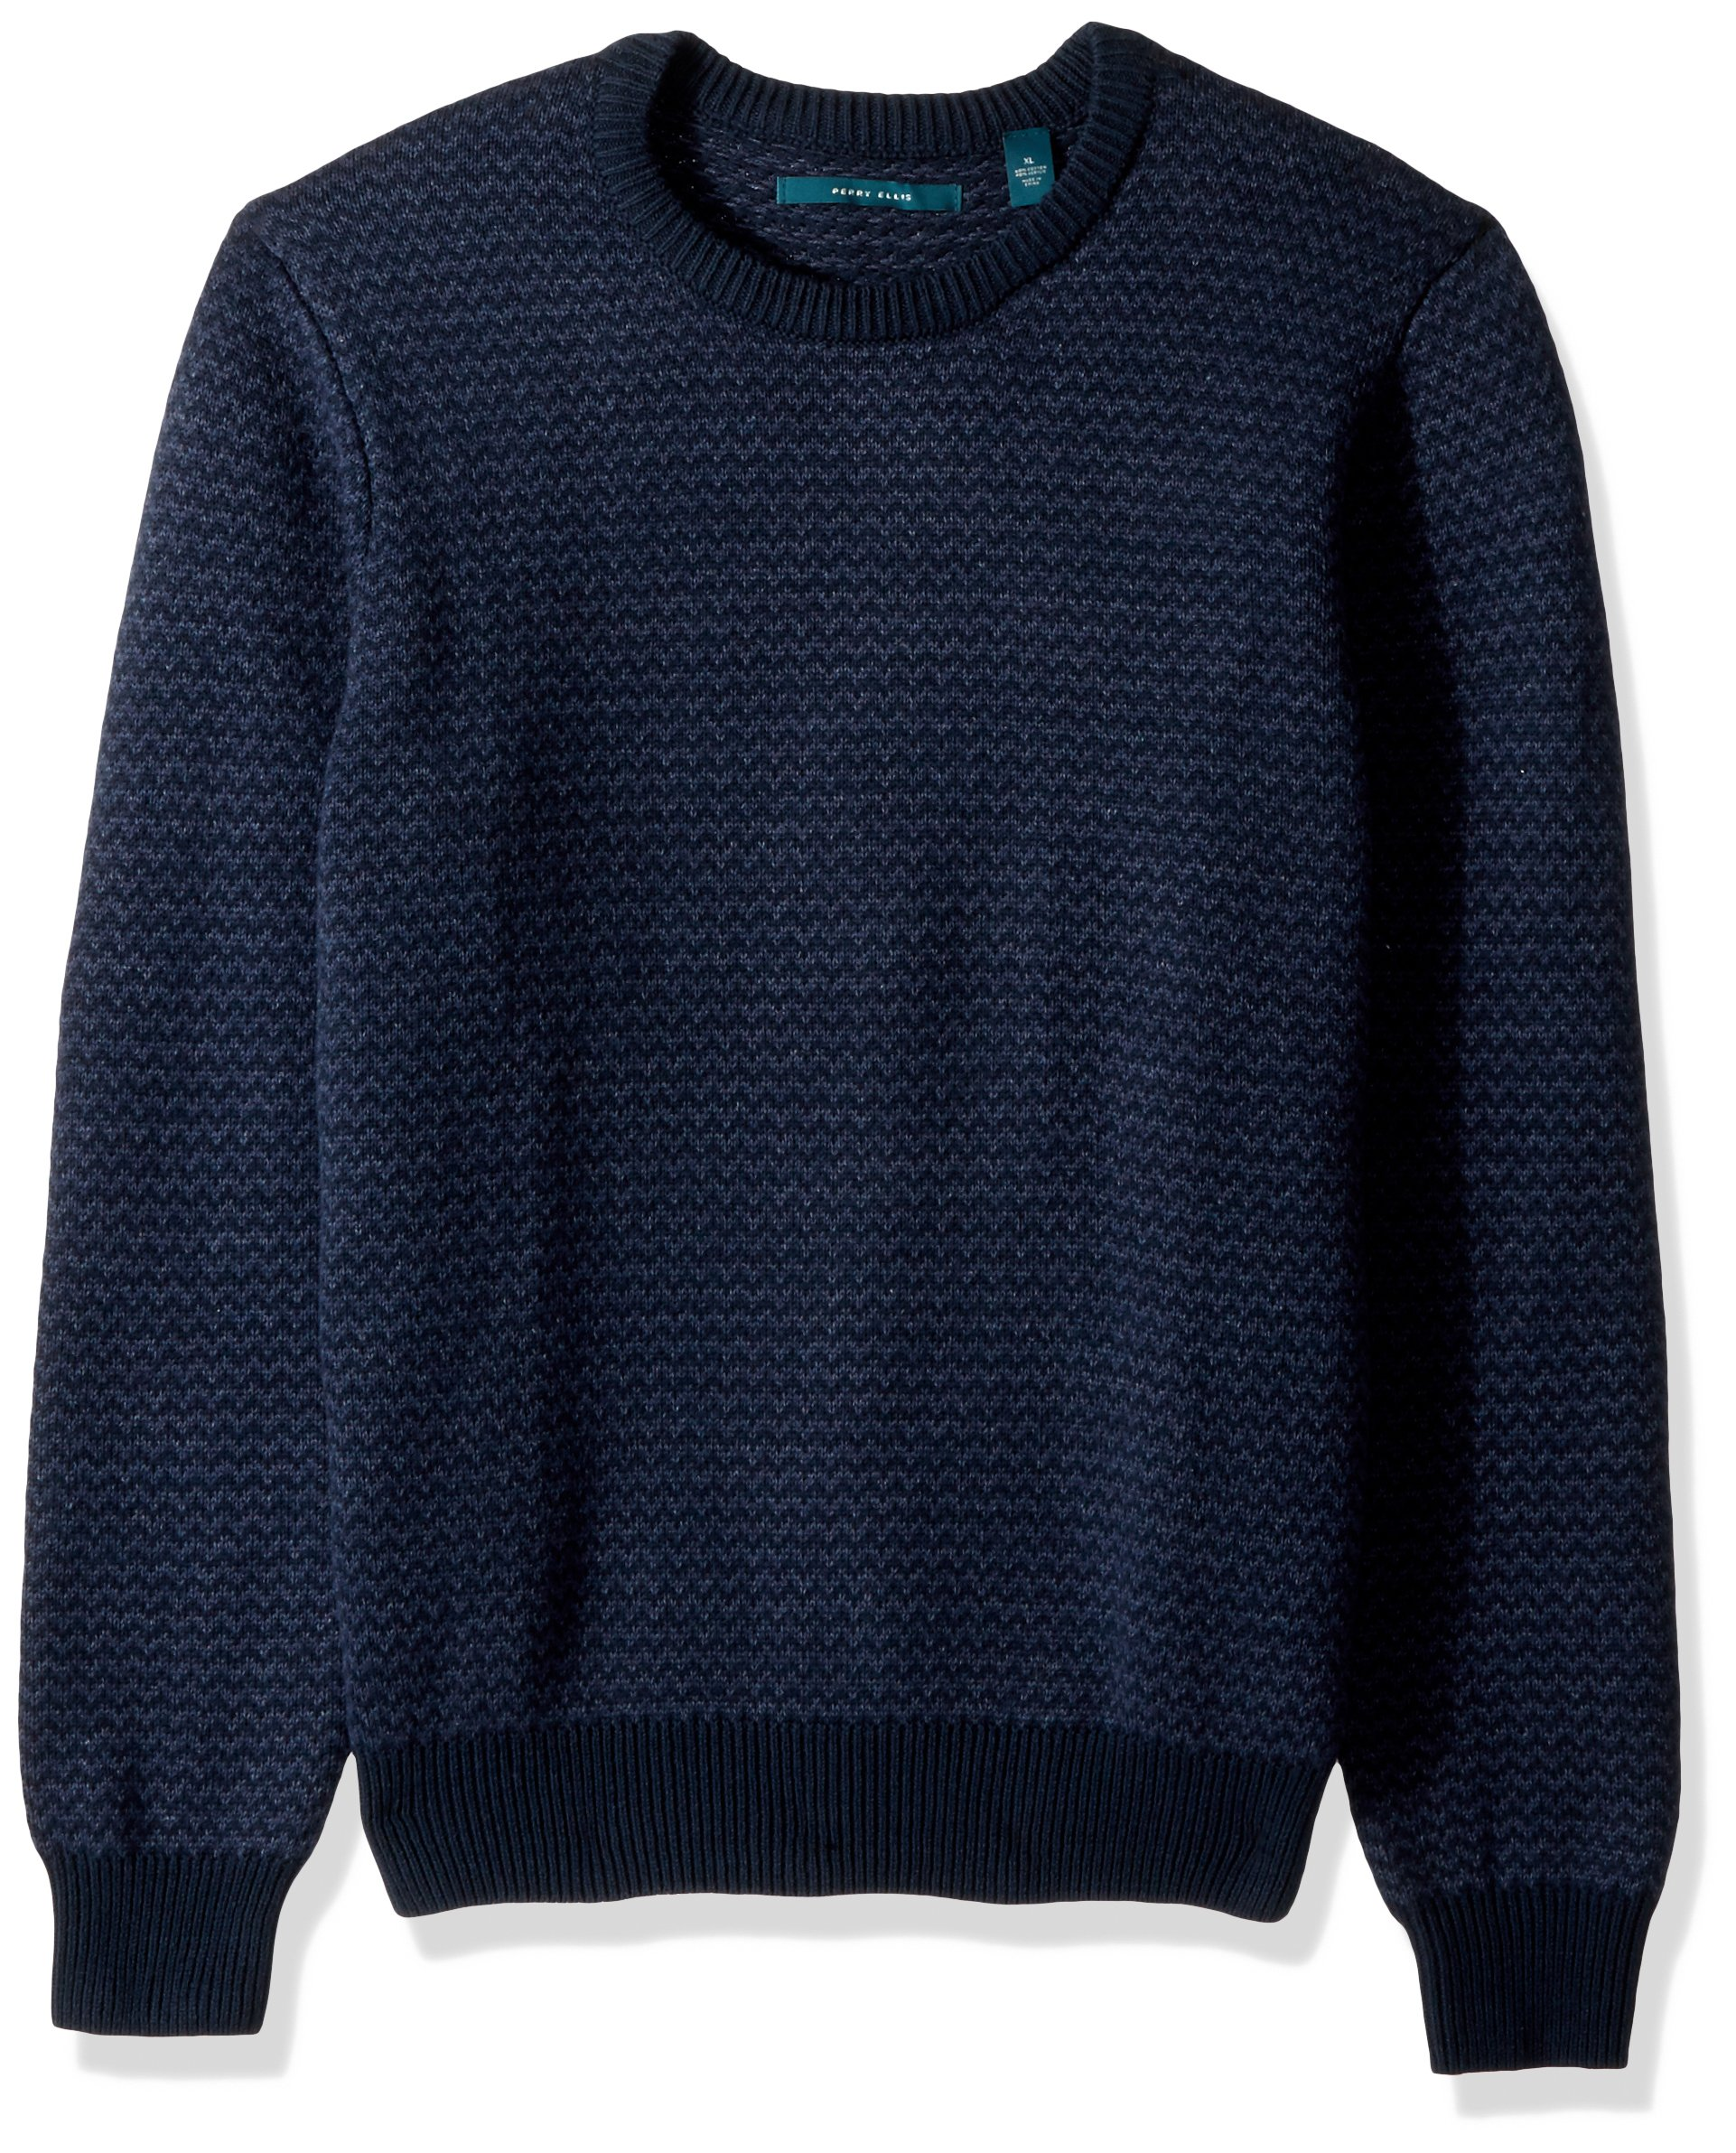 Perry Ellis Men's Herringbone Crew Neck Sweater, Dark Sapphire, Large